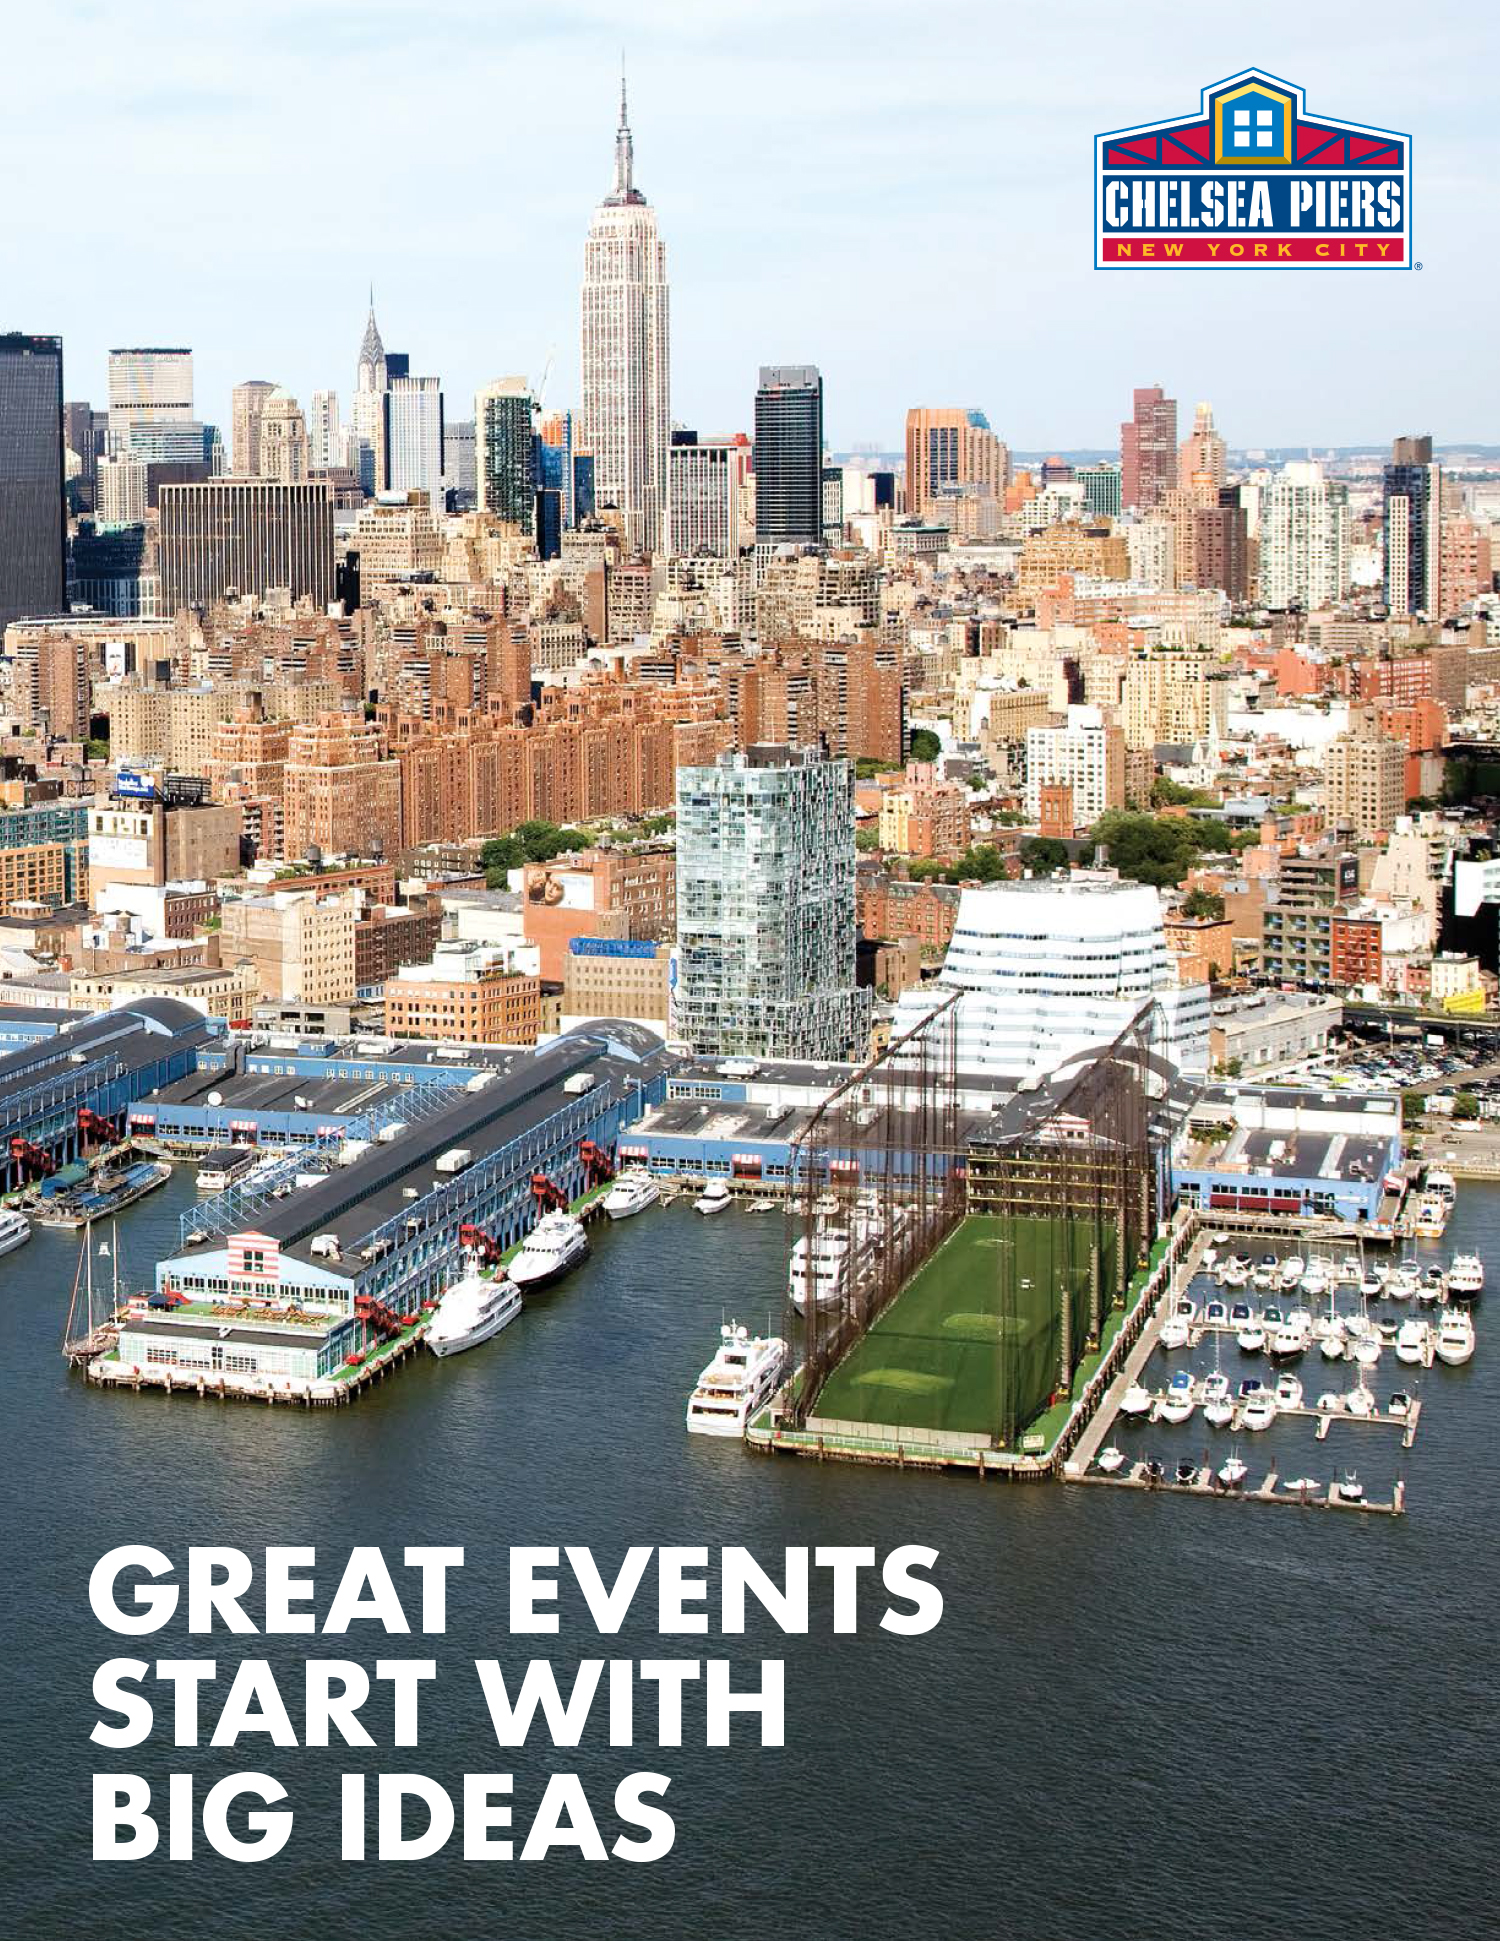 Big Event Ideas Start At Chelsea Piers